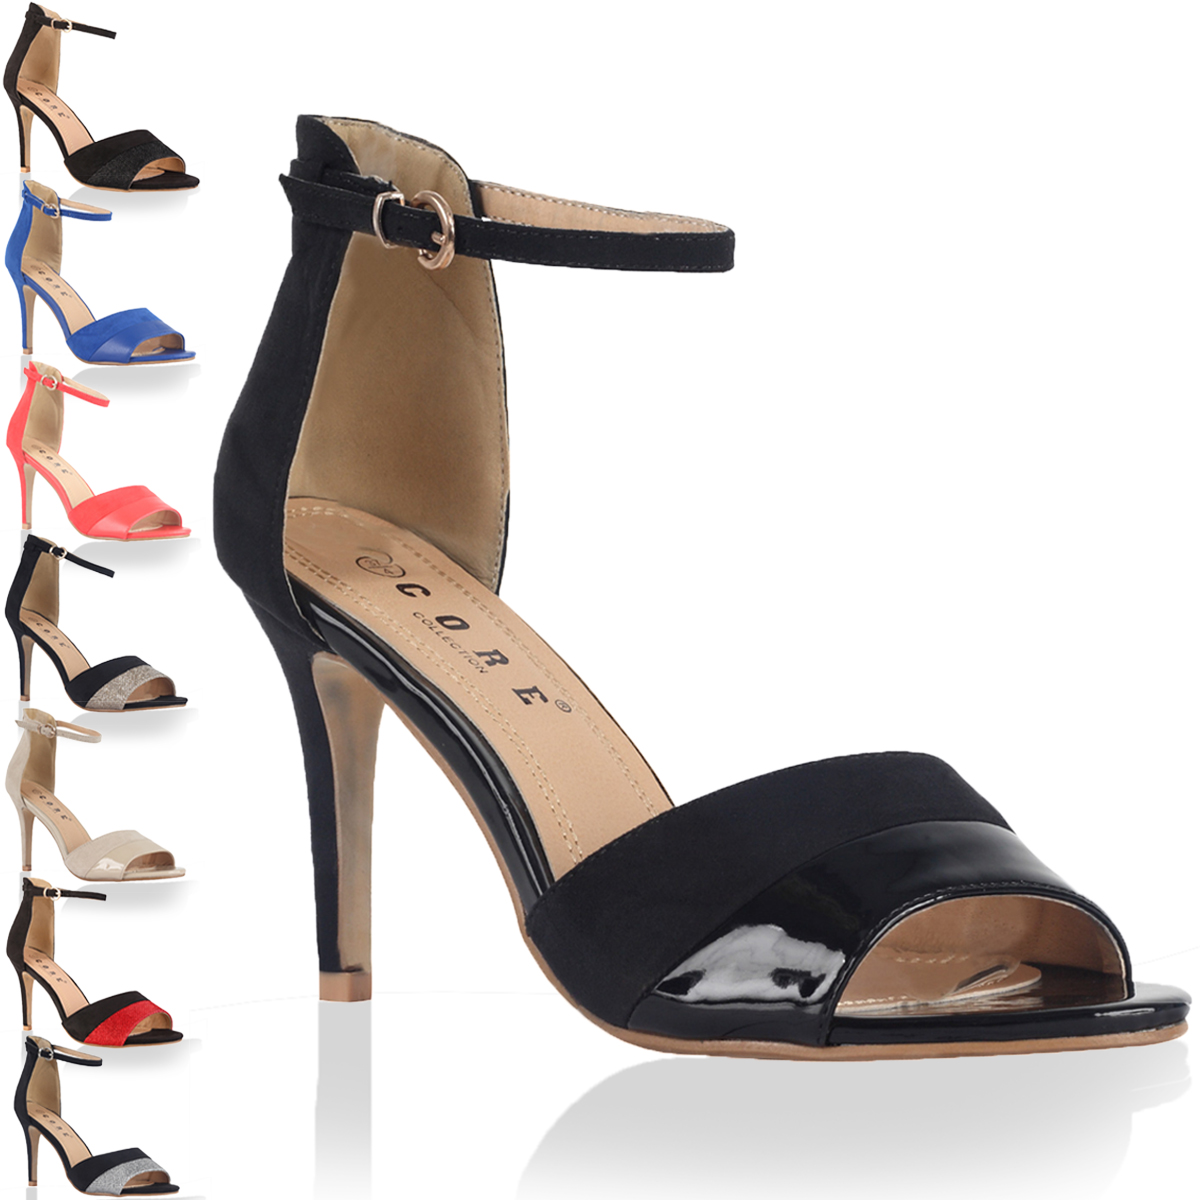 17F LADIES ANKLE STRAP WOMENS PEEP TOE HIGH STILETTO HEEL SANDALS SHOES SIZE 4-9